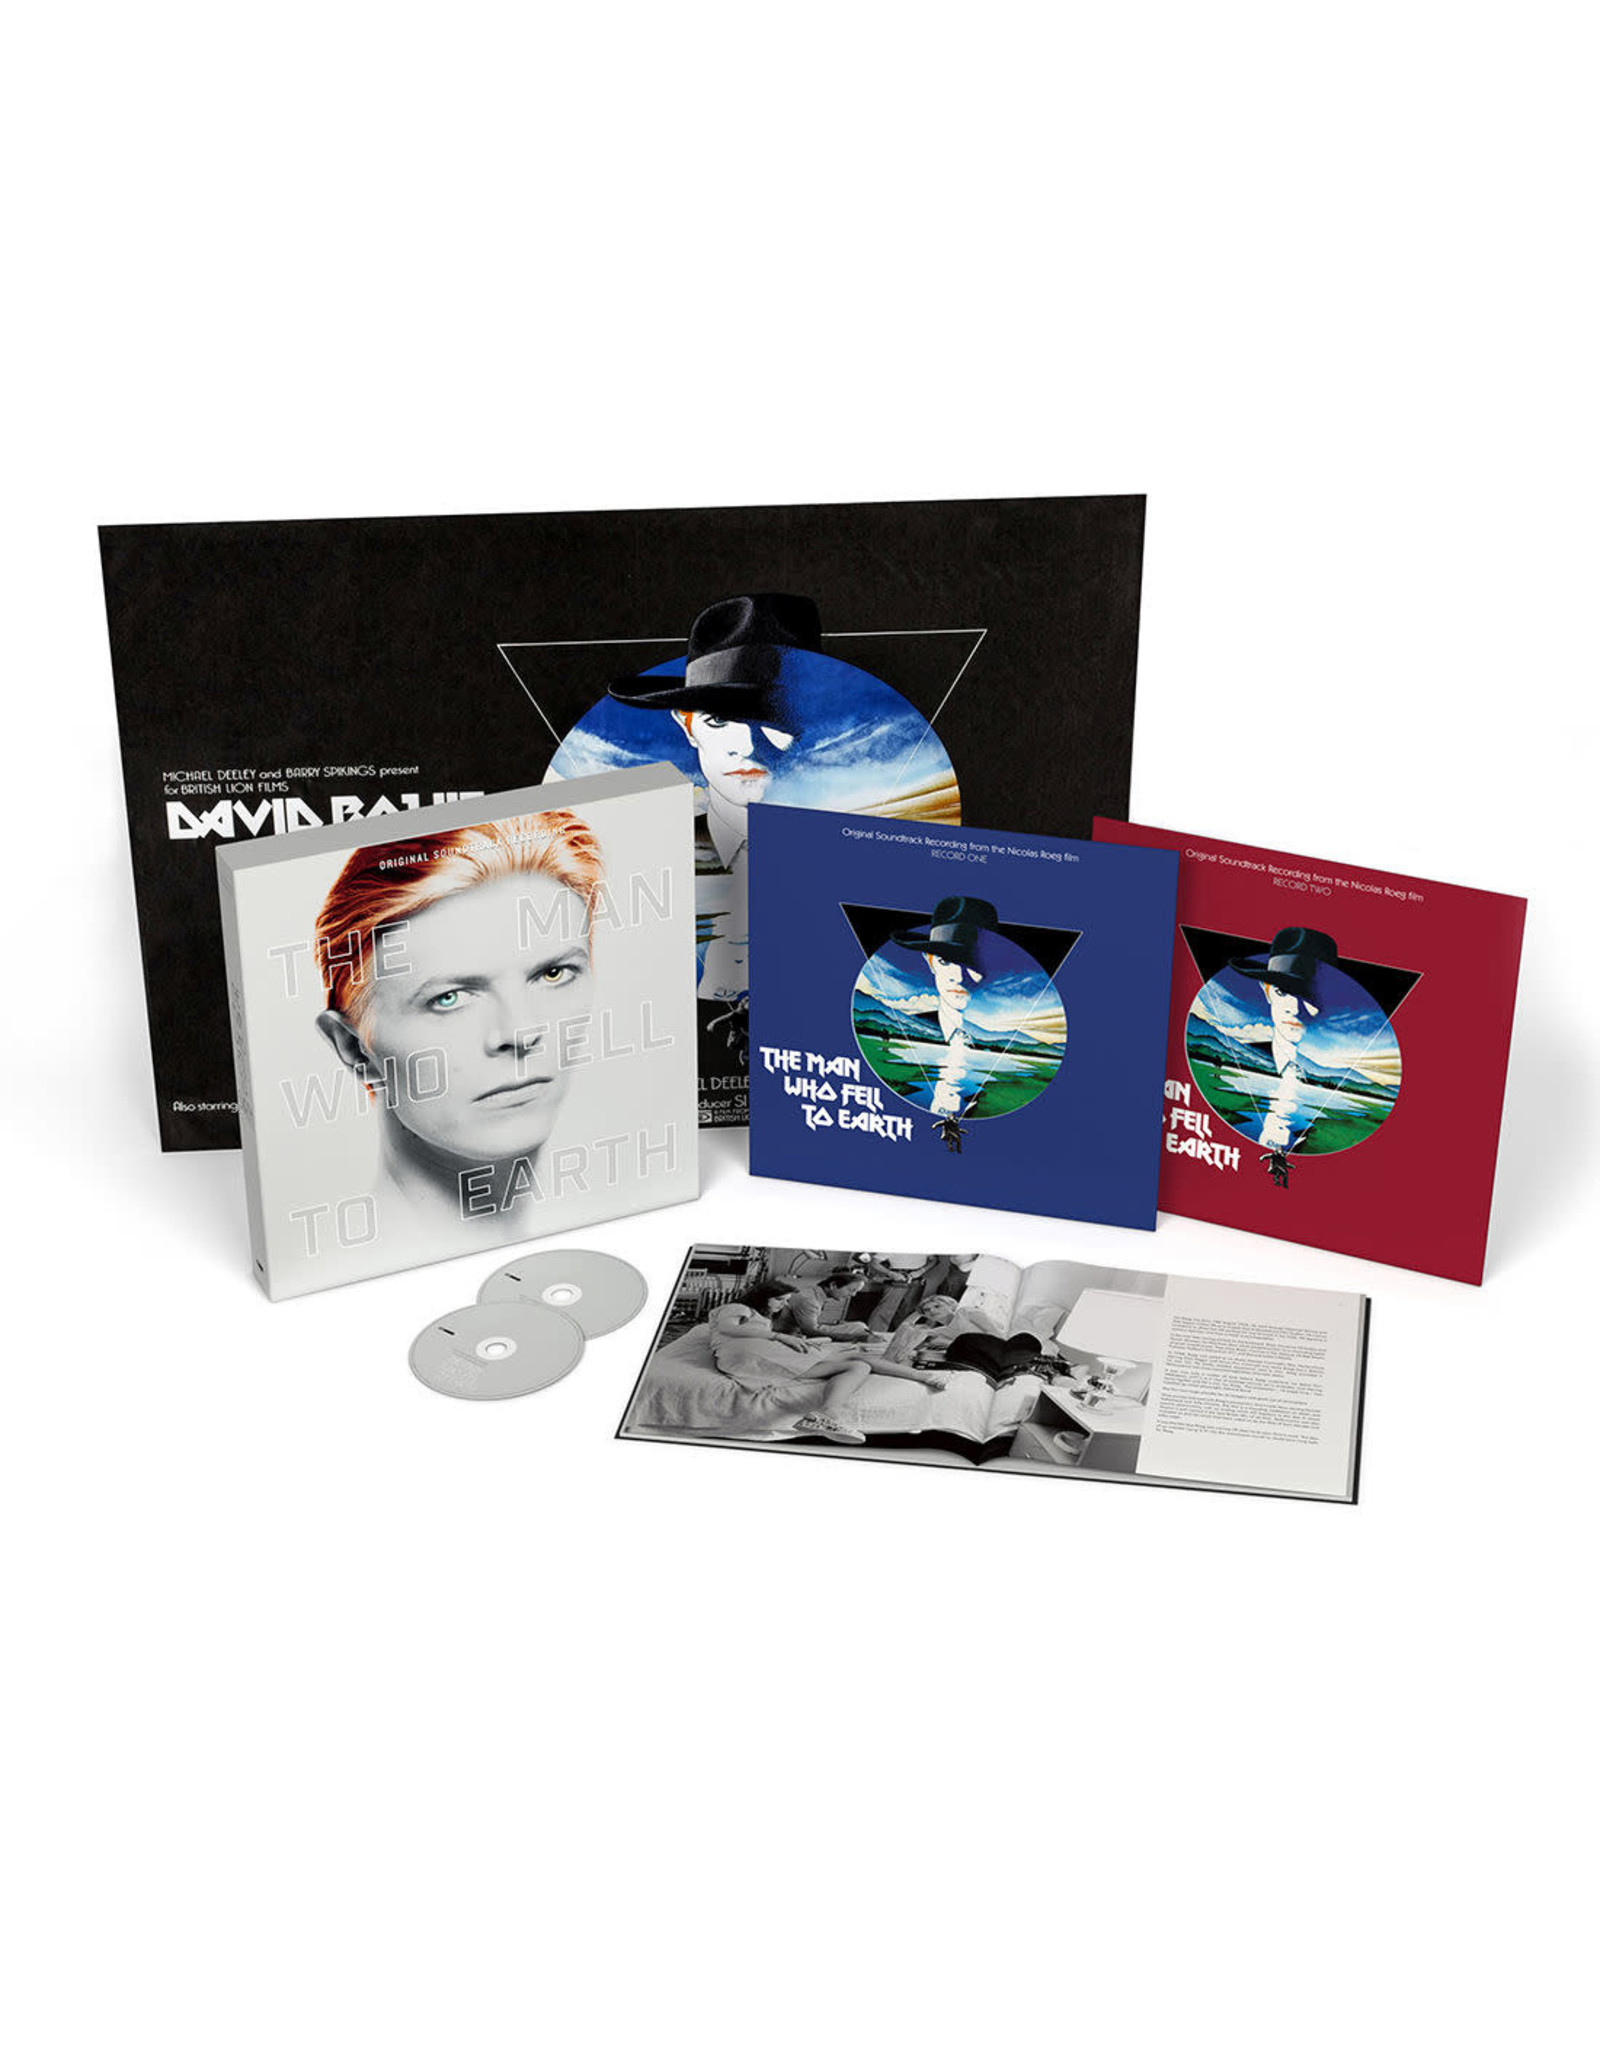 OST - The Man Who Fell To Earth (Ltd Dlx 2 CD + 2 LP)